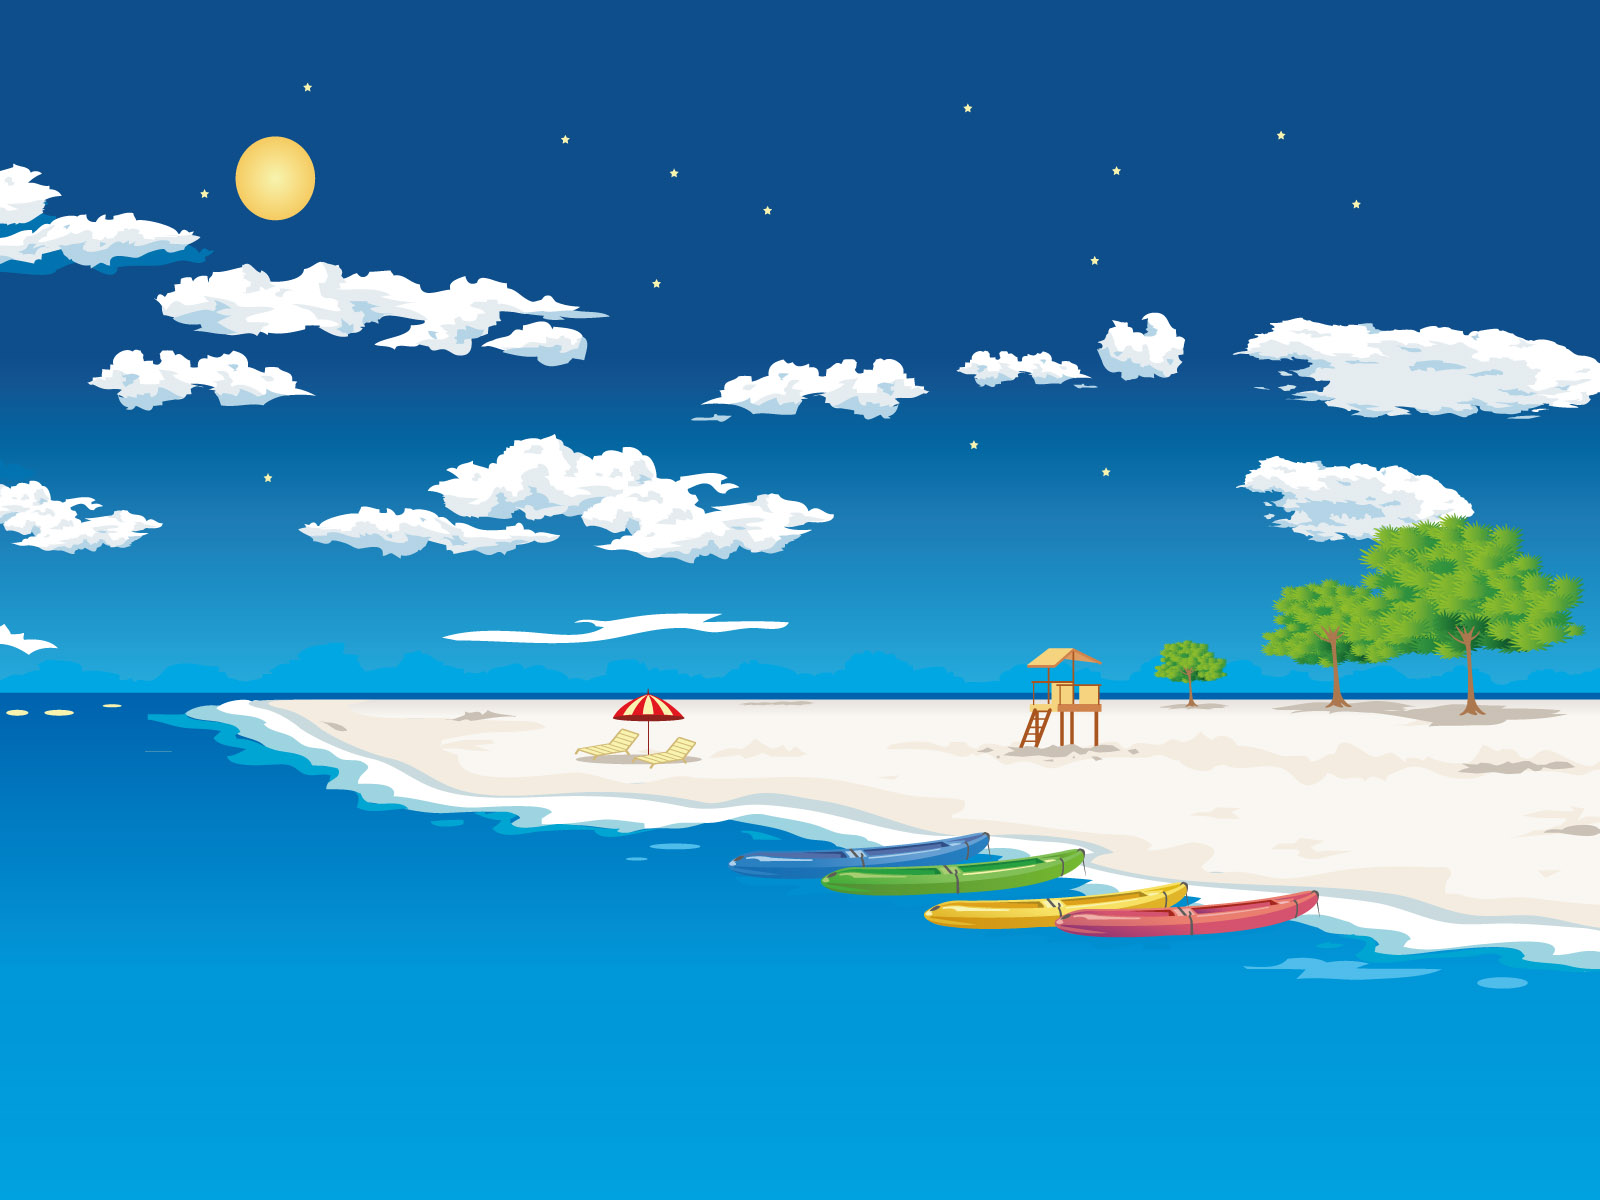 Beach Background Clipart - Clipart Kid